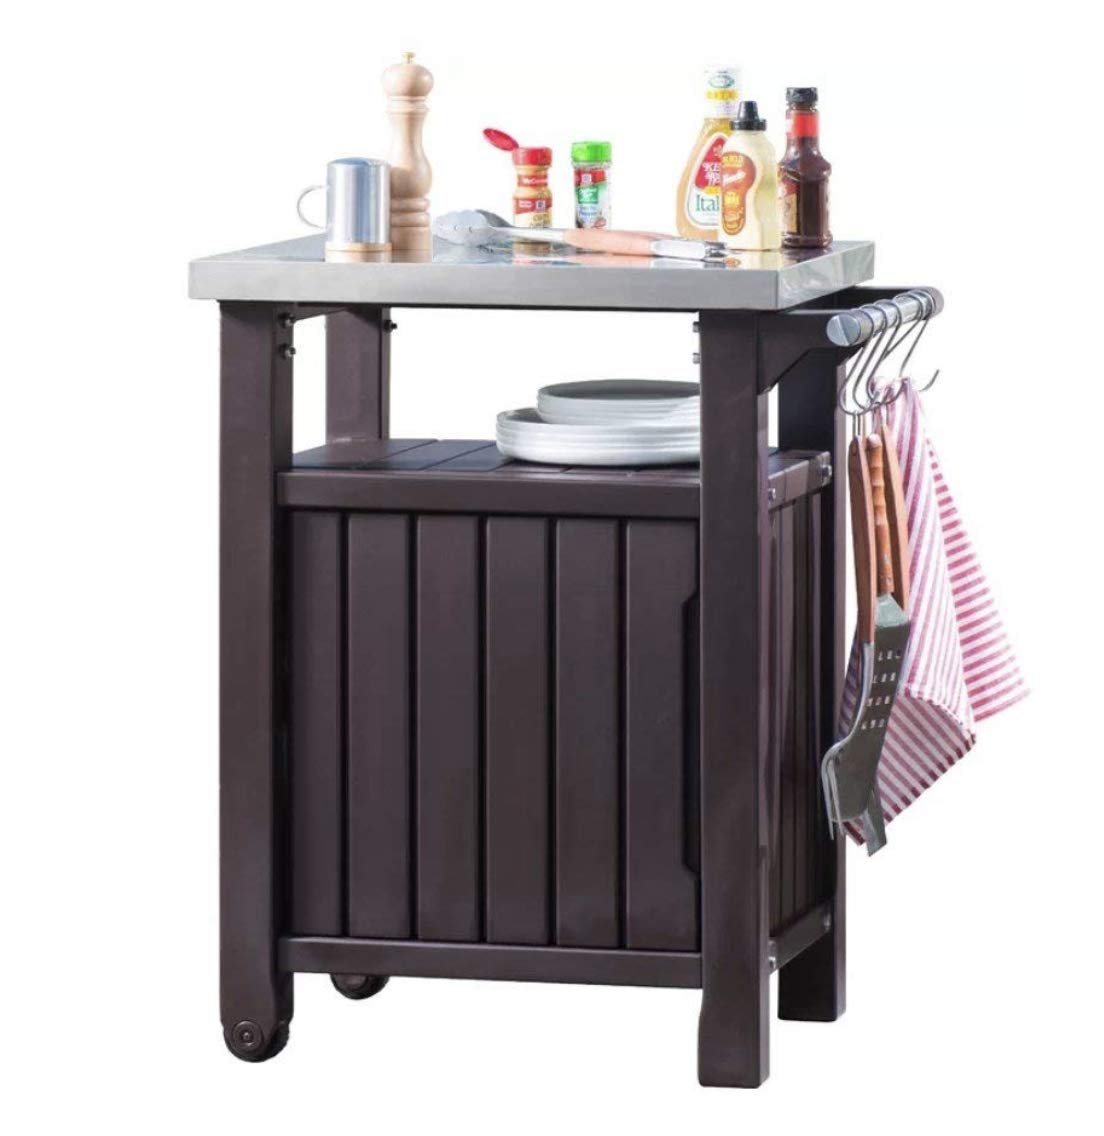 BBQ Bar Table Small Patio Furniture Outdoor Garden Cupboard Side Storage Cabinet Barbecue Entertainment Professional Metal Stainless Steel Work Top Brown Plastic Resin 2 Wheels 1 Door Serving Trolley Home & Garden